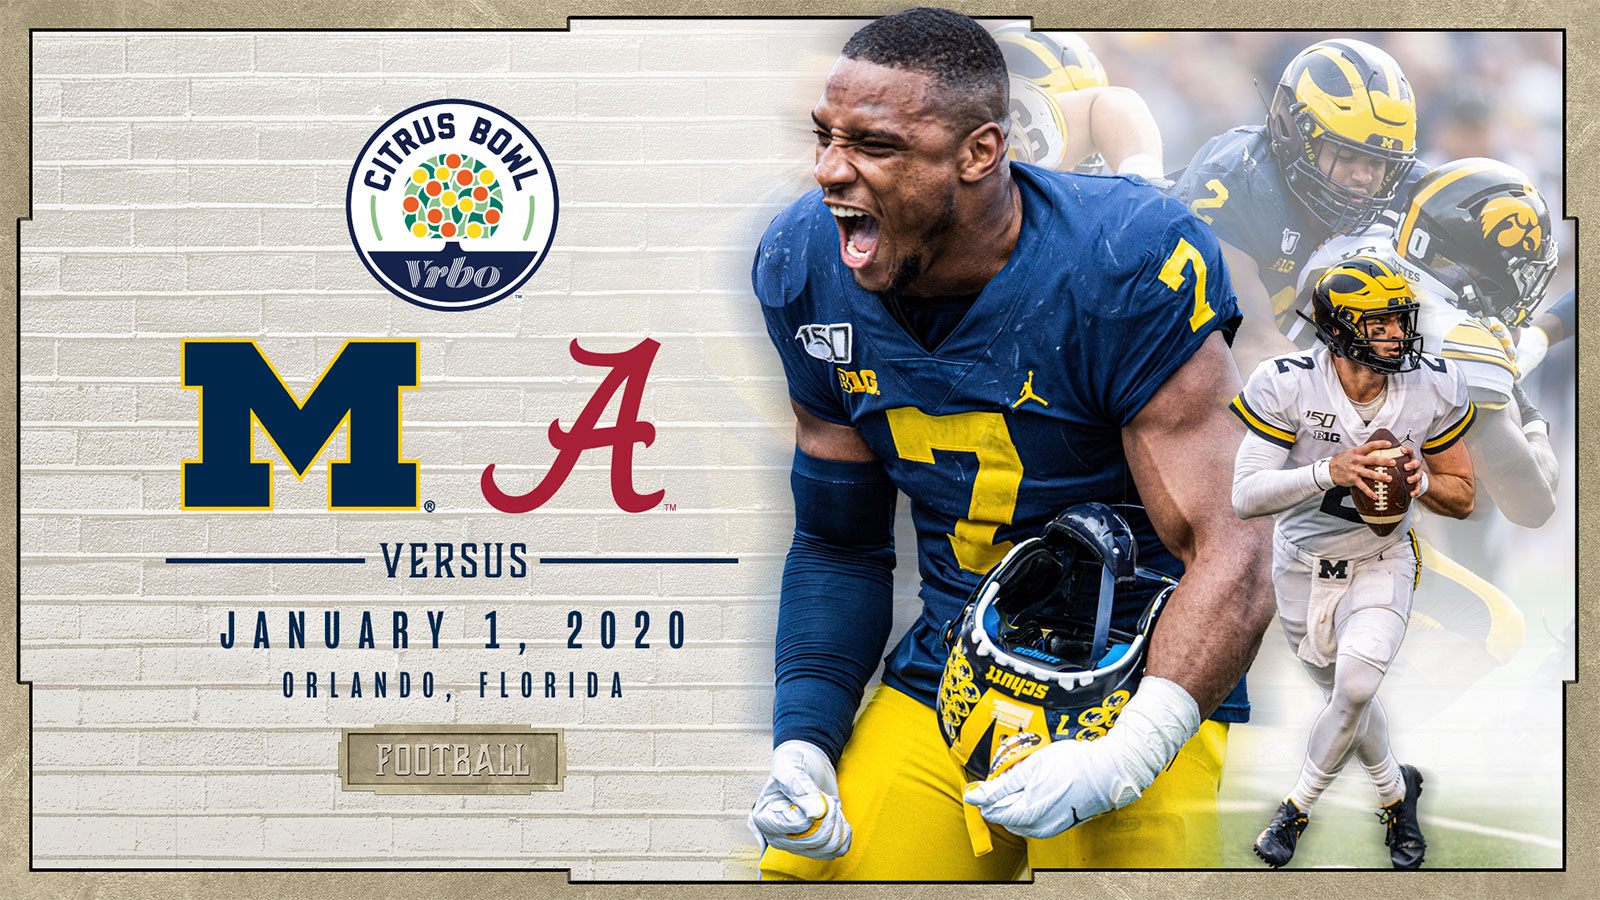 Bowl Games Jan 1 2020.Michigan To Face Alabama In 2020 Vrbo Citrus Bowl In Orlando